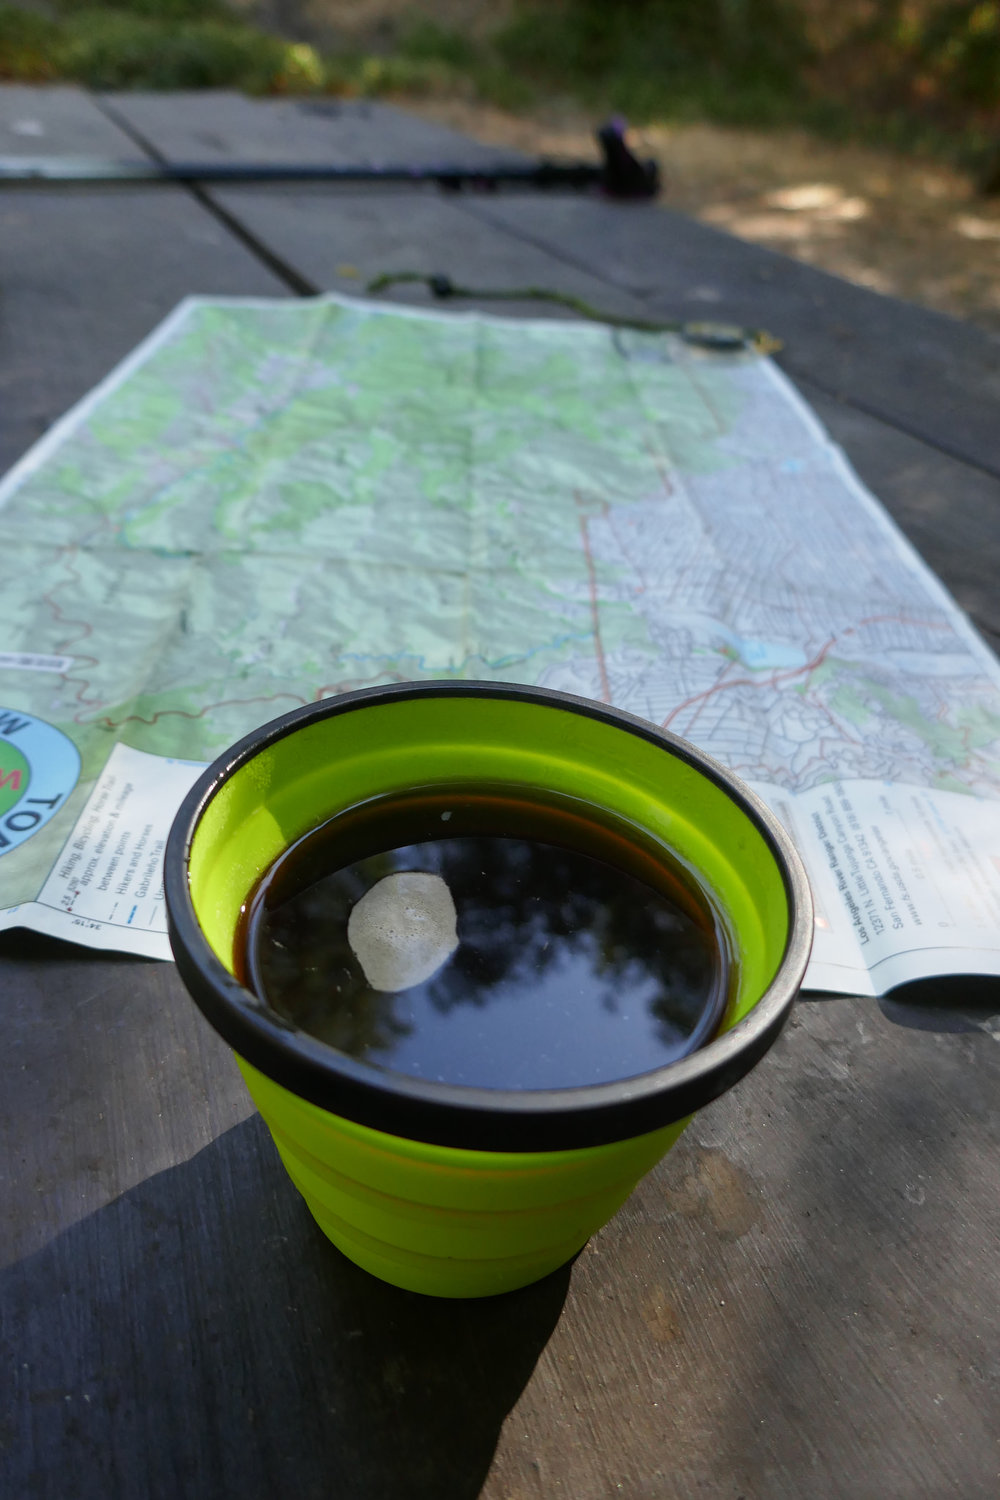 Coffee always tastes so good out on the trail!